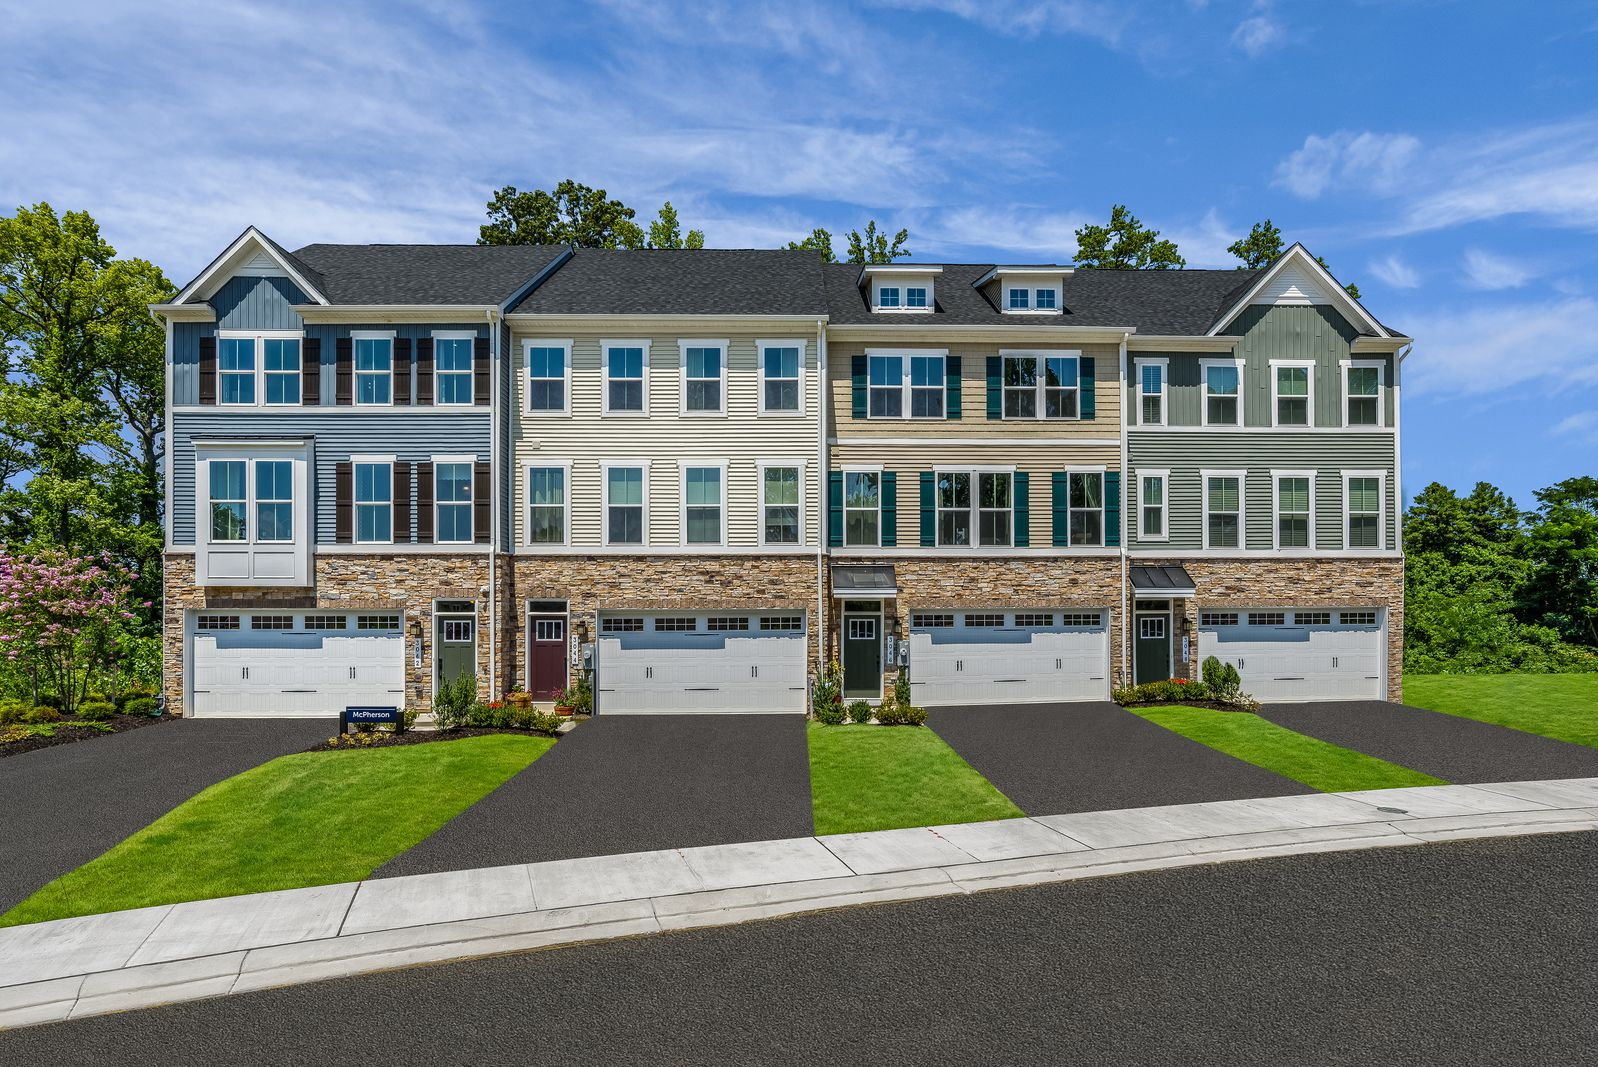 Welcome to Shaw's Discovery:Waterfront community just minutes to Baltimore with community trails, pier and forest conservation. Now selling water view homesites!Click here to schedule your visit.